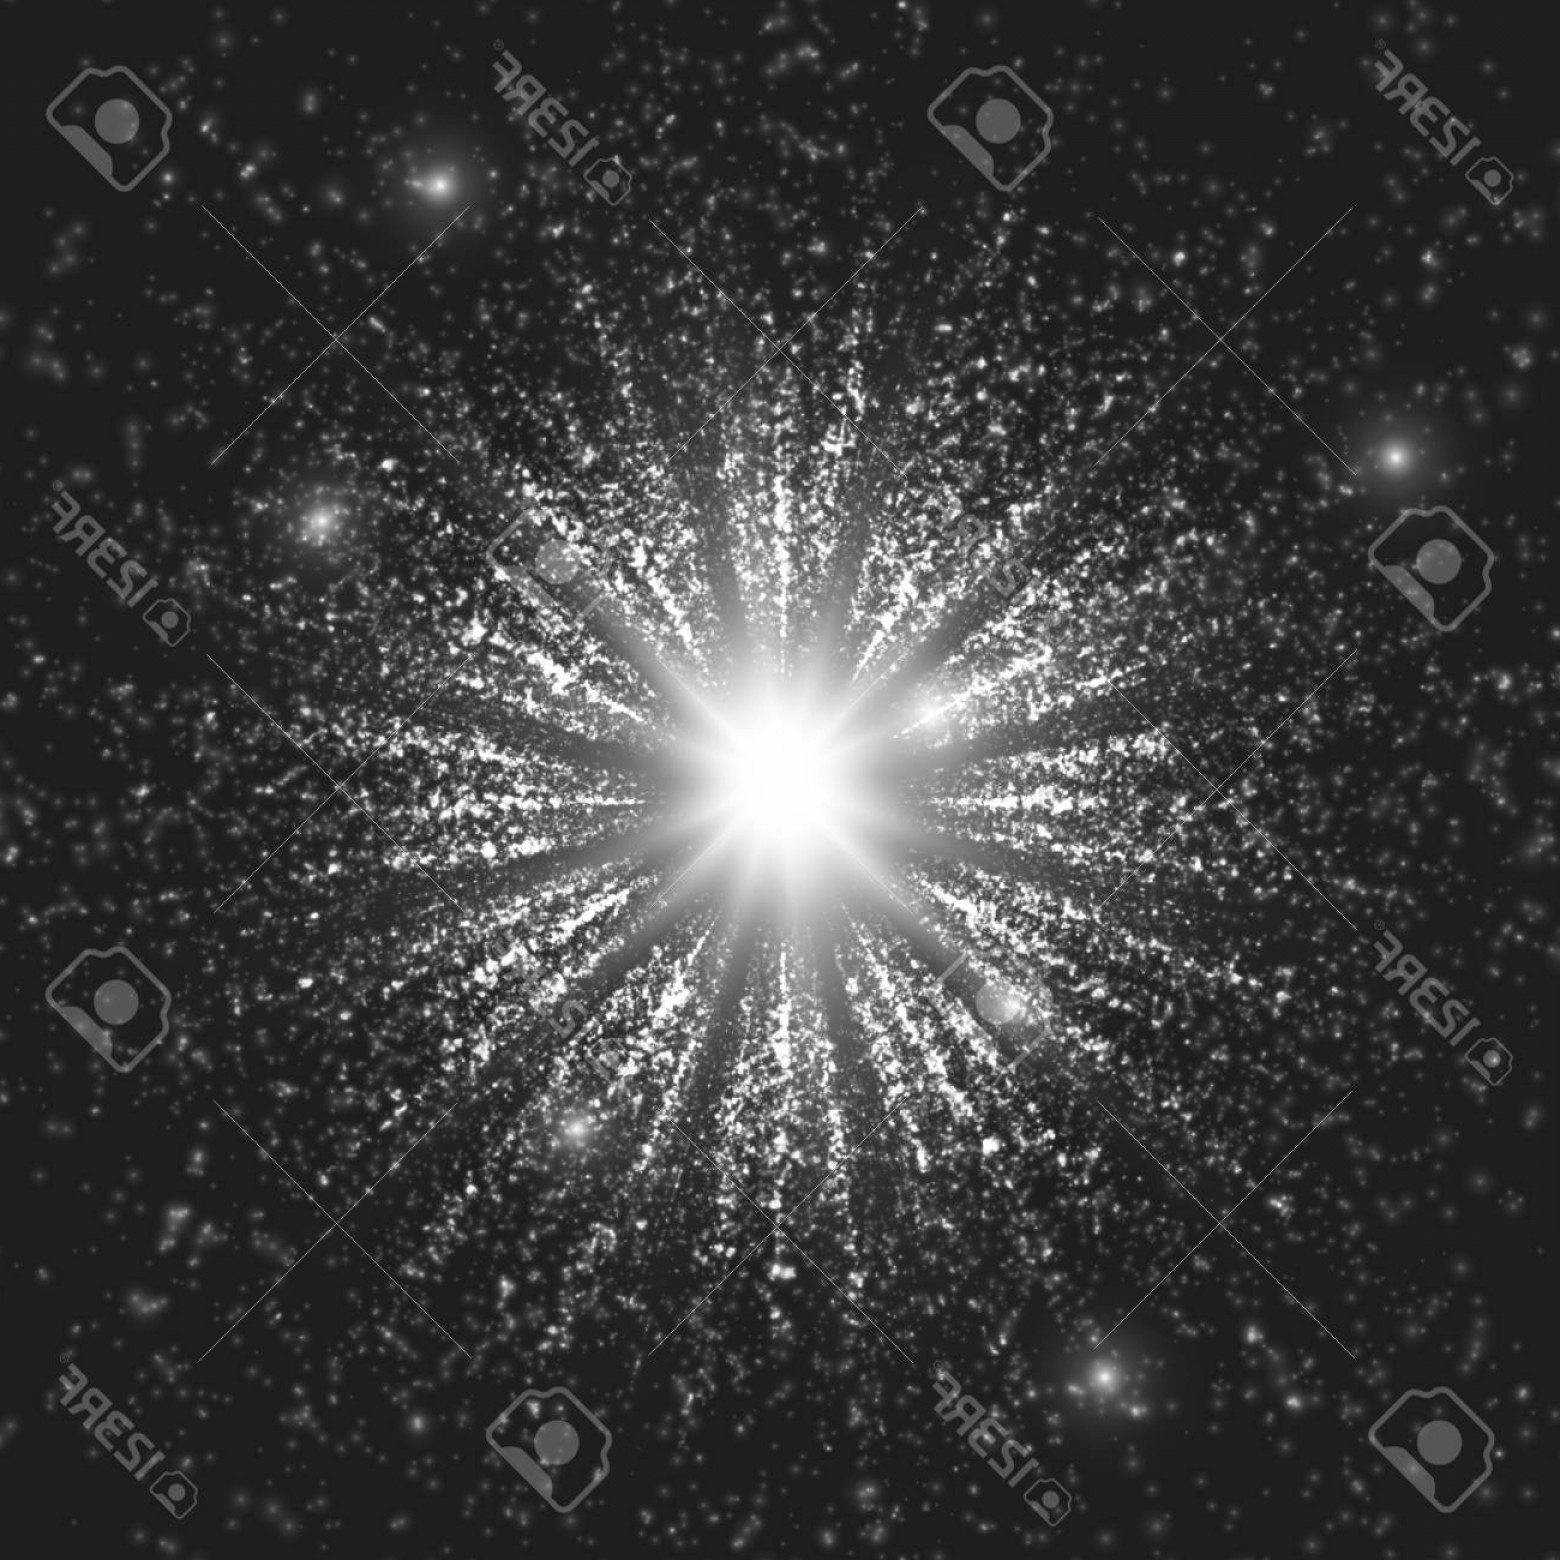 Vector-Based Grayscale Christmas: Photostock Vector Grayscale Space Background Explosion Of Glowing Particles Christmas Star Futuristic Technology Style